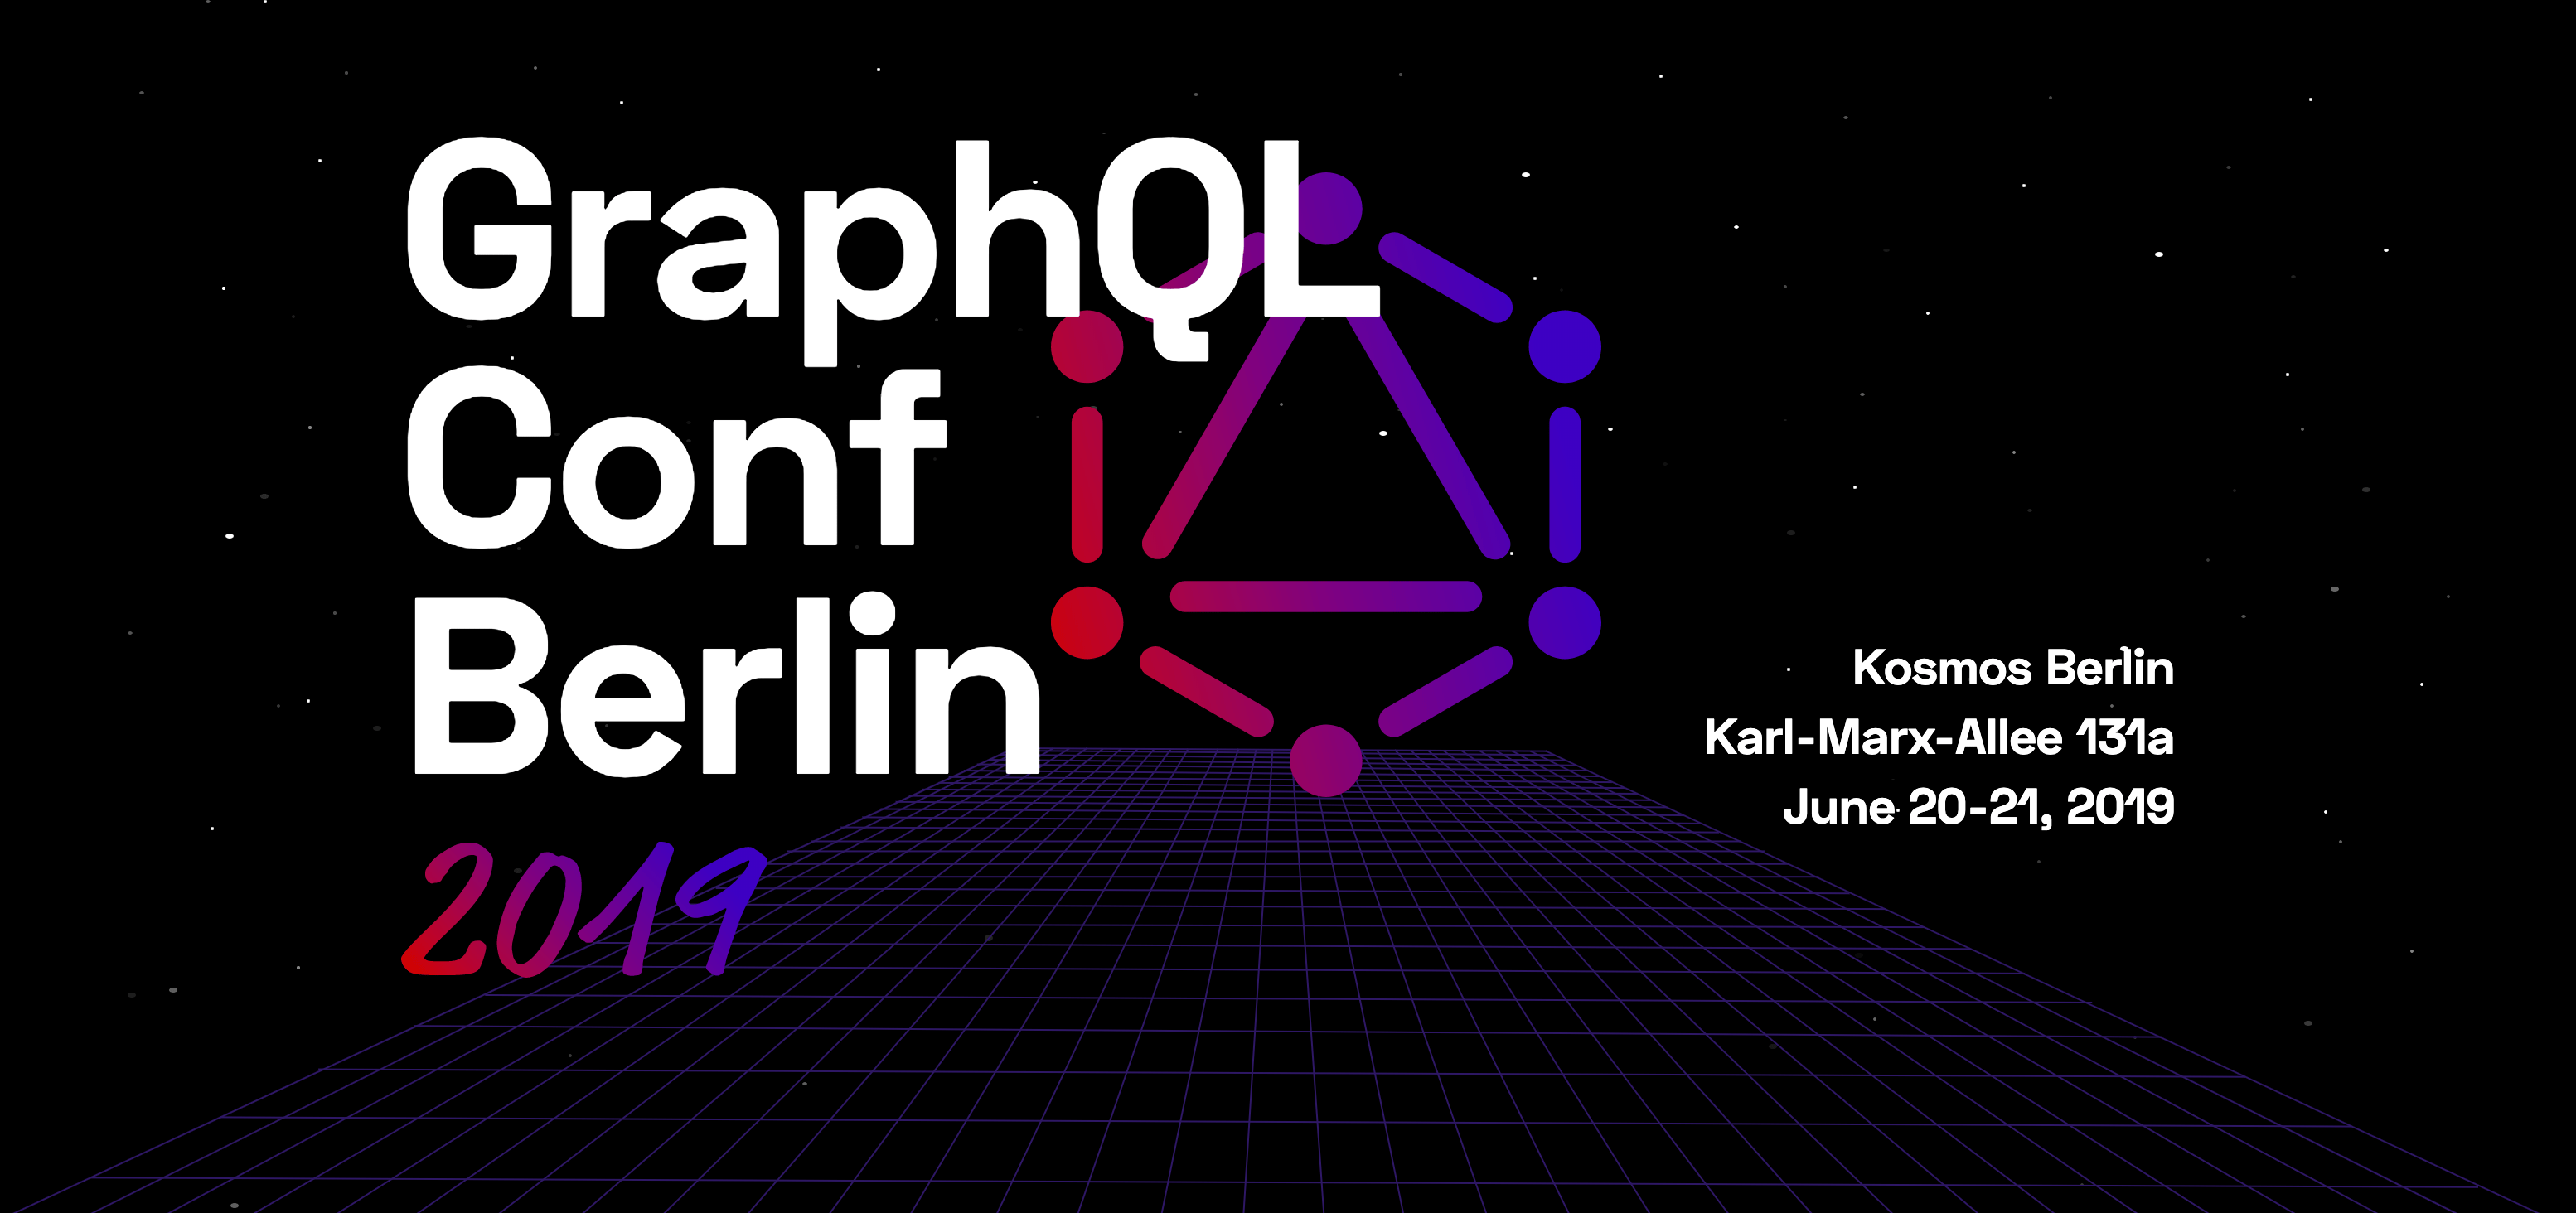 GraphQL Conf 2019 in a nutshell - Some Takeaways